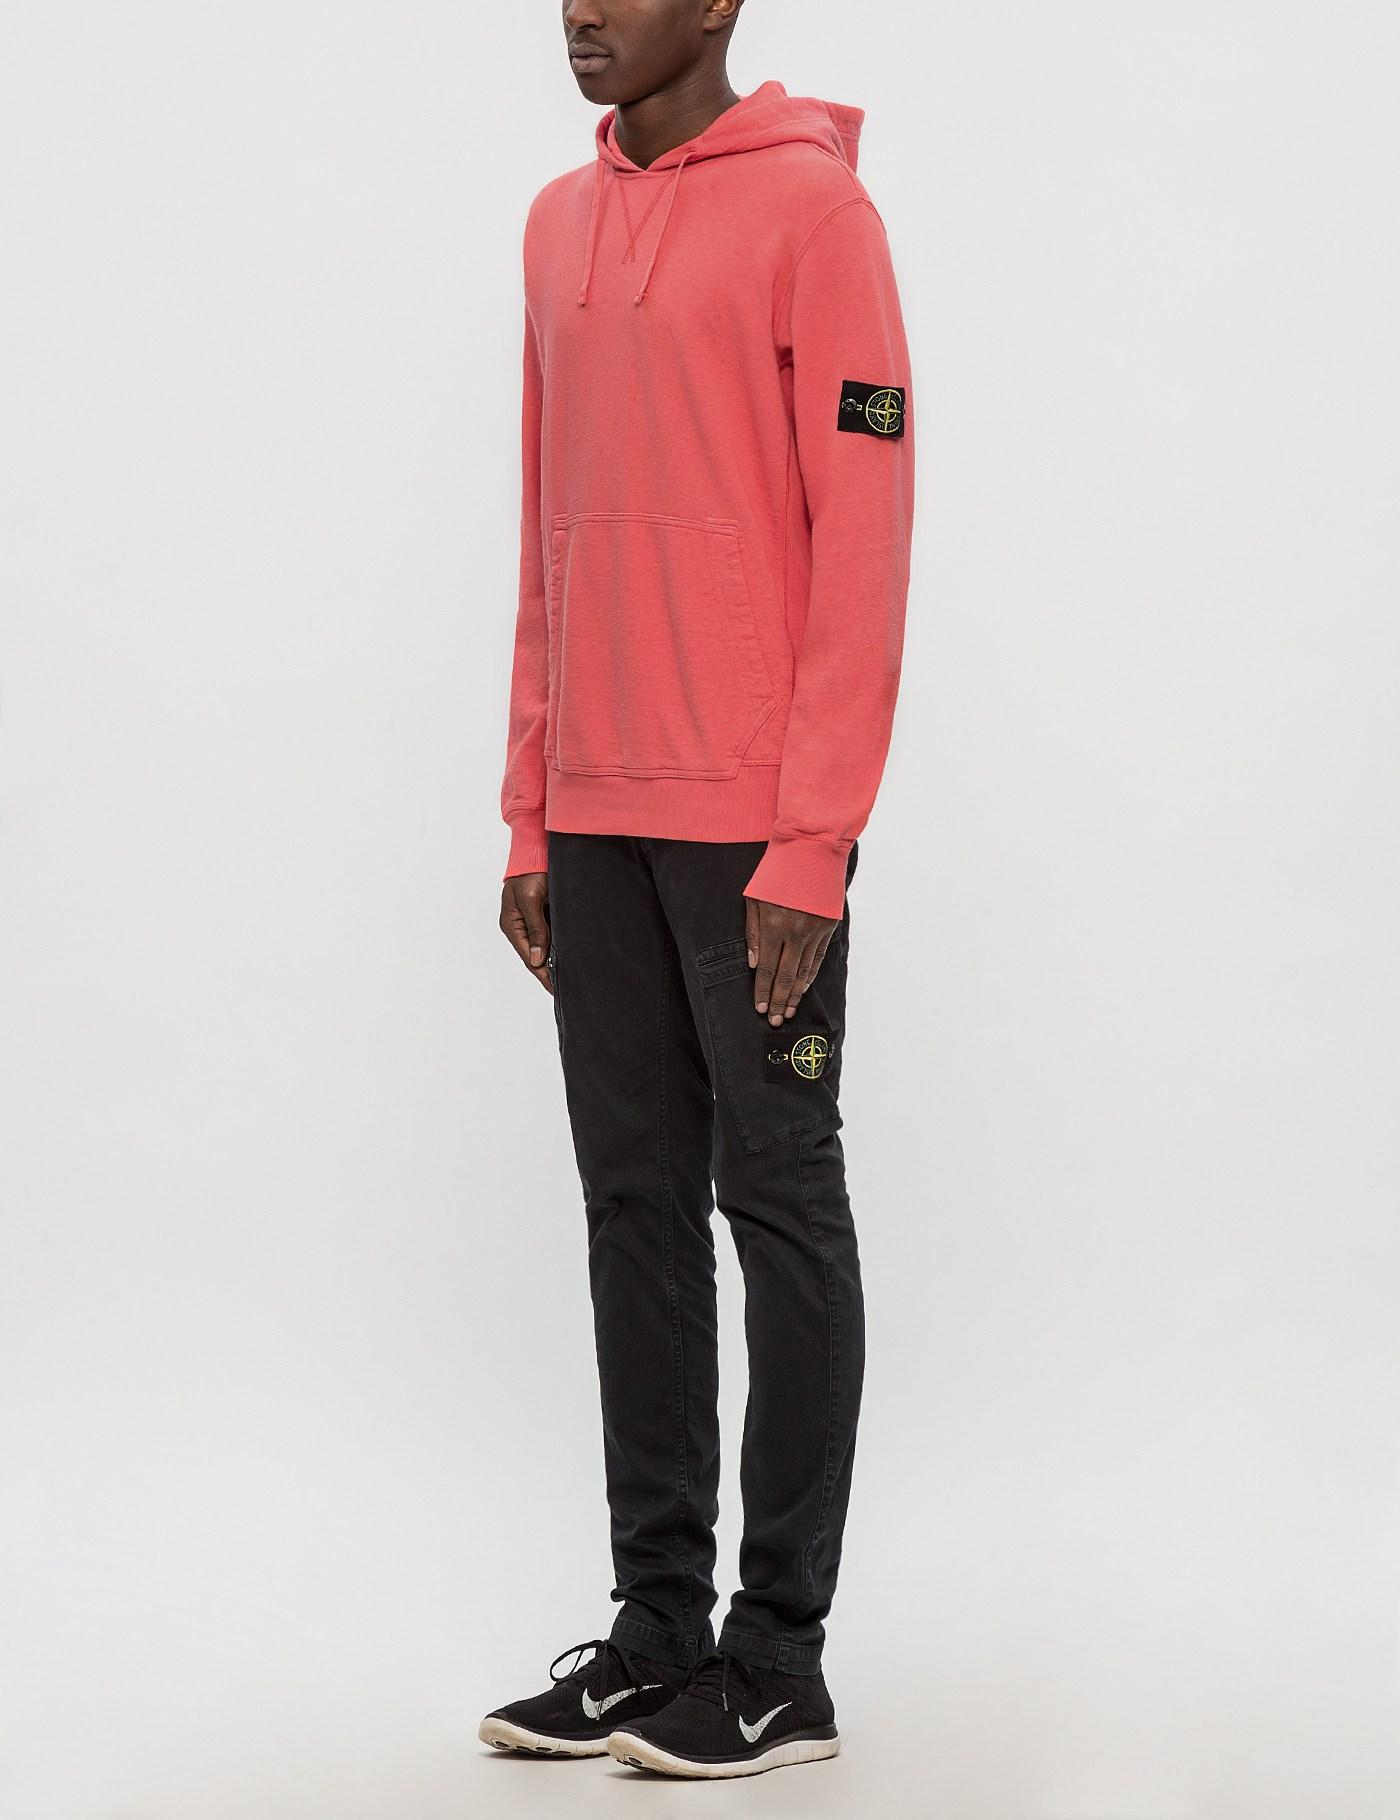 Stone Island Cotton Hoodie in Pink for Men